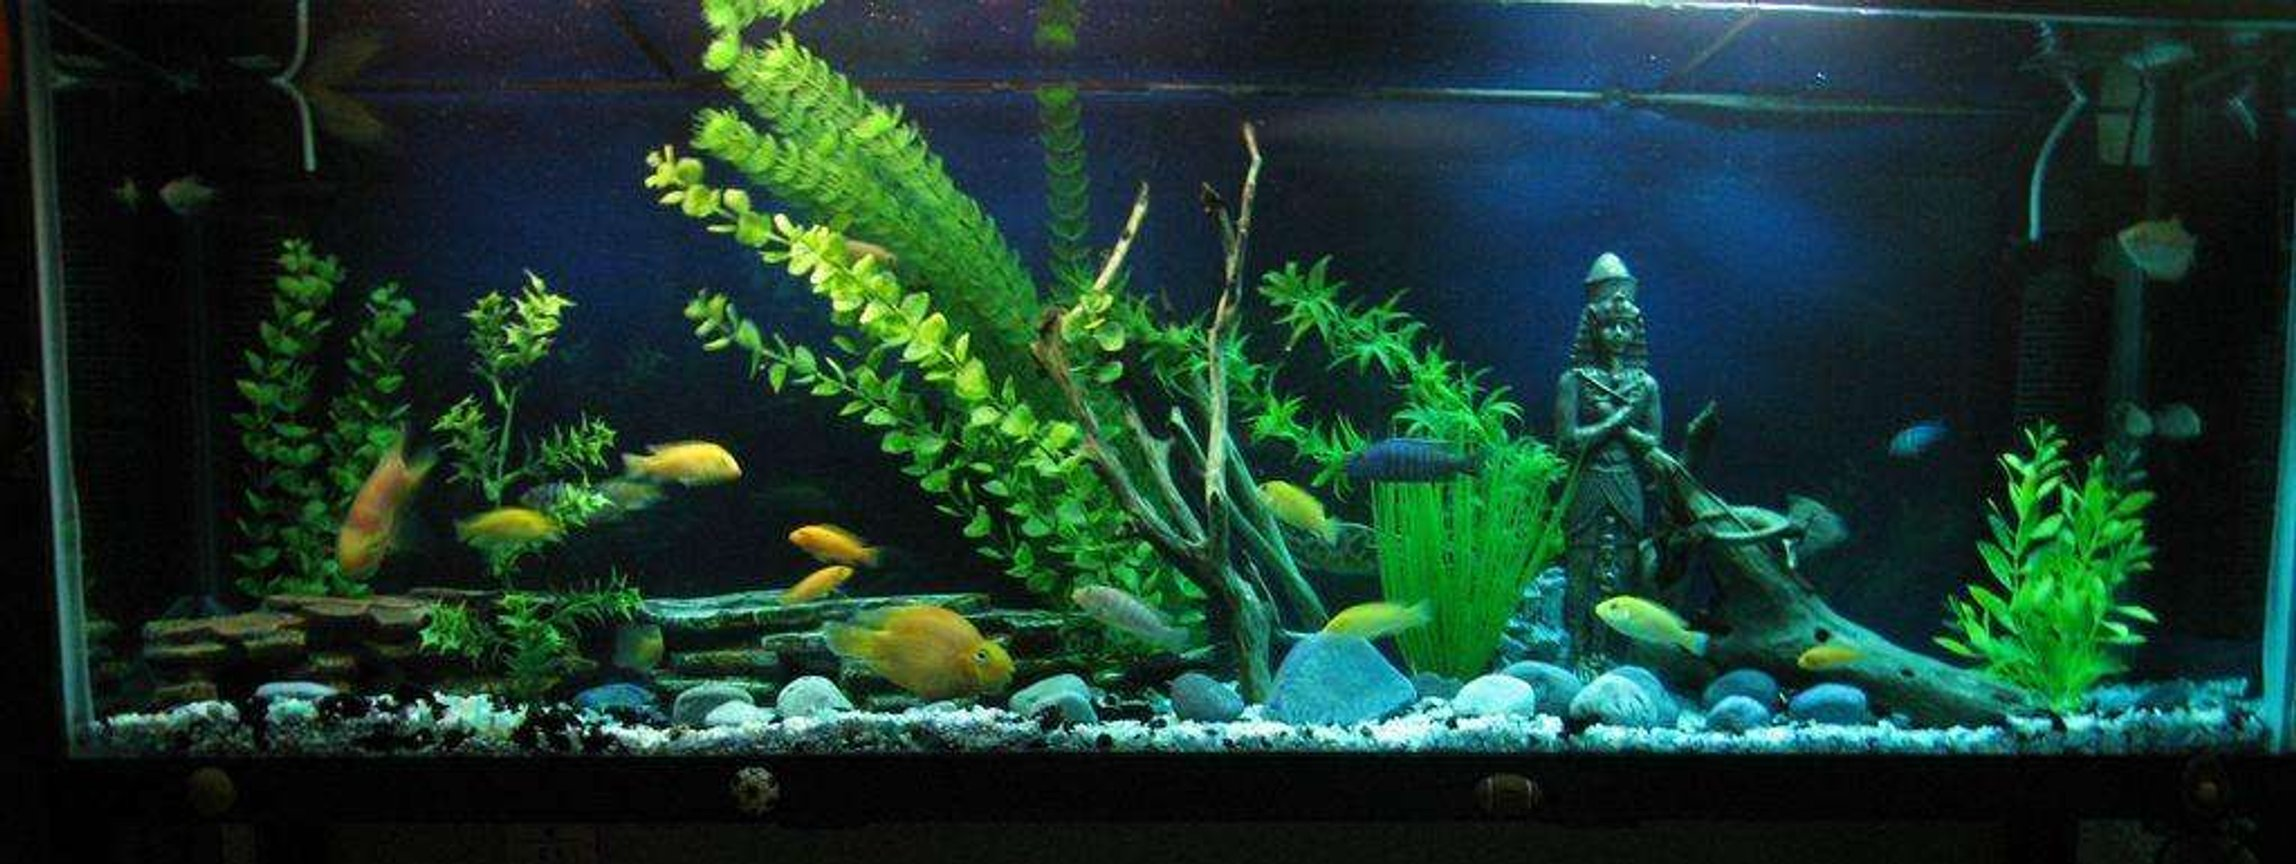 45 gallons freshwater fish tank (mostly fish and non-living decorations) - acuario d 200 l. peces ciclidos.